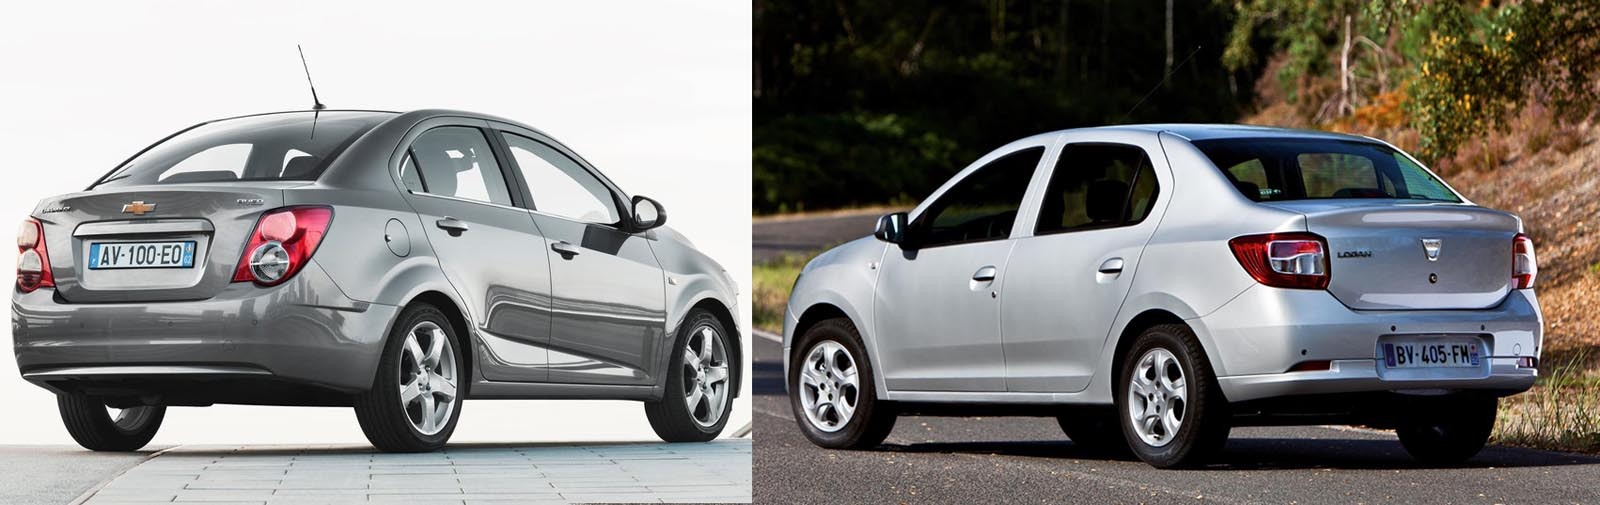 renault logan vs aveo